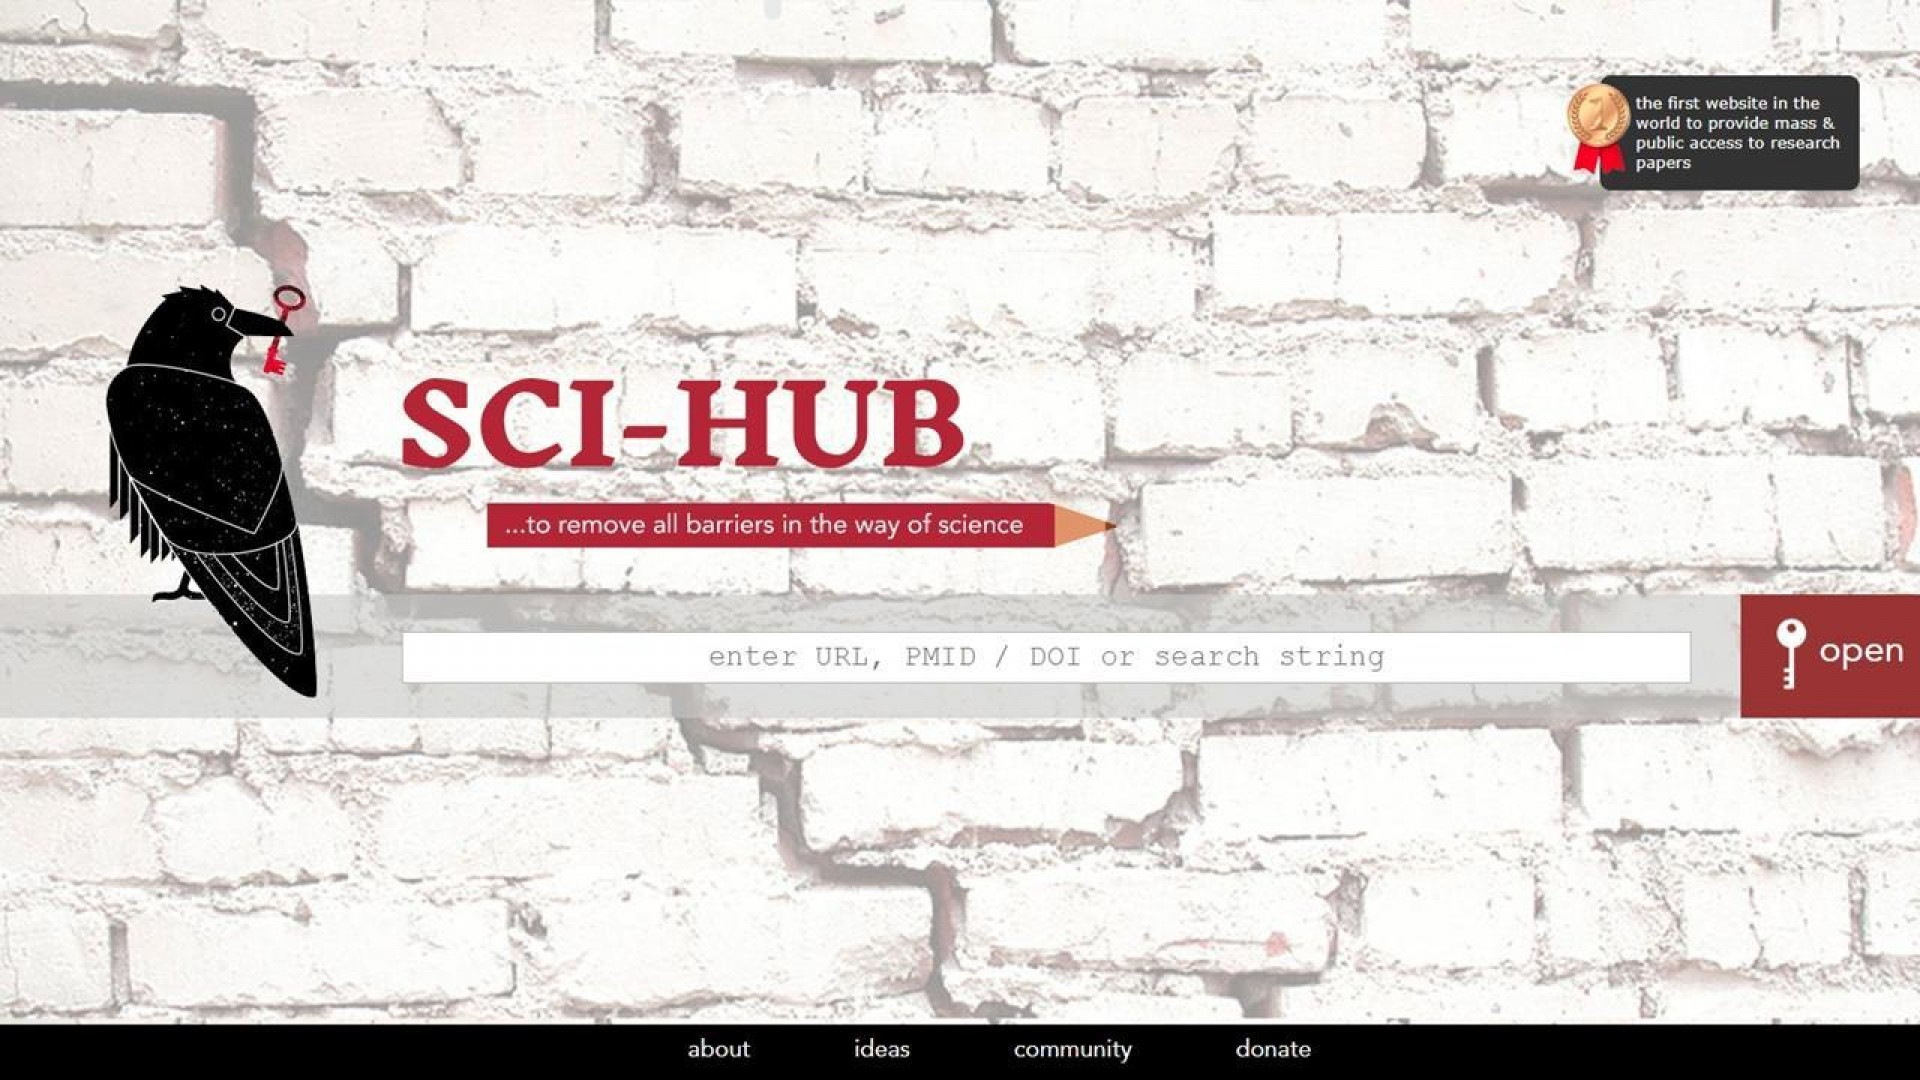 005 Pirate Website For Research Papers Paper 132103 Sci Amazing 1920